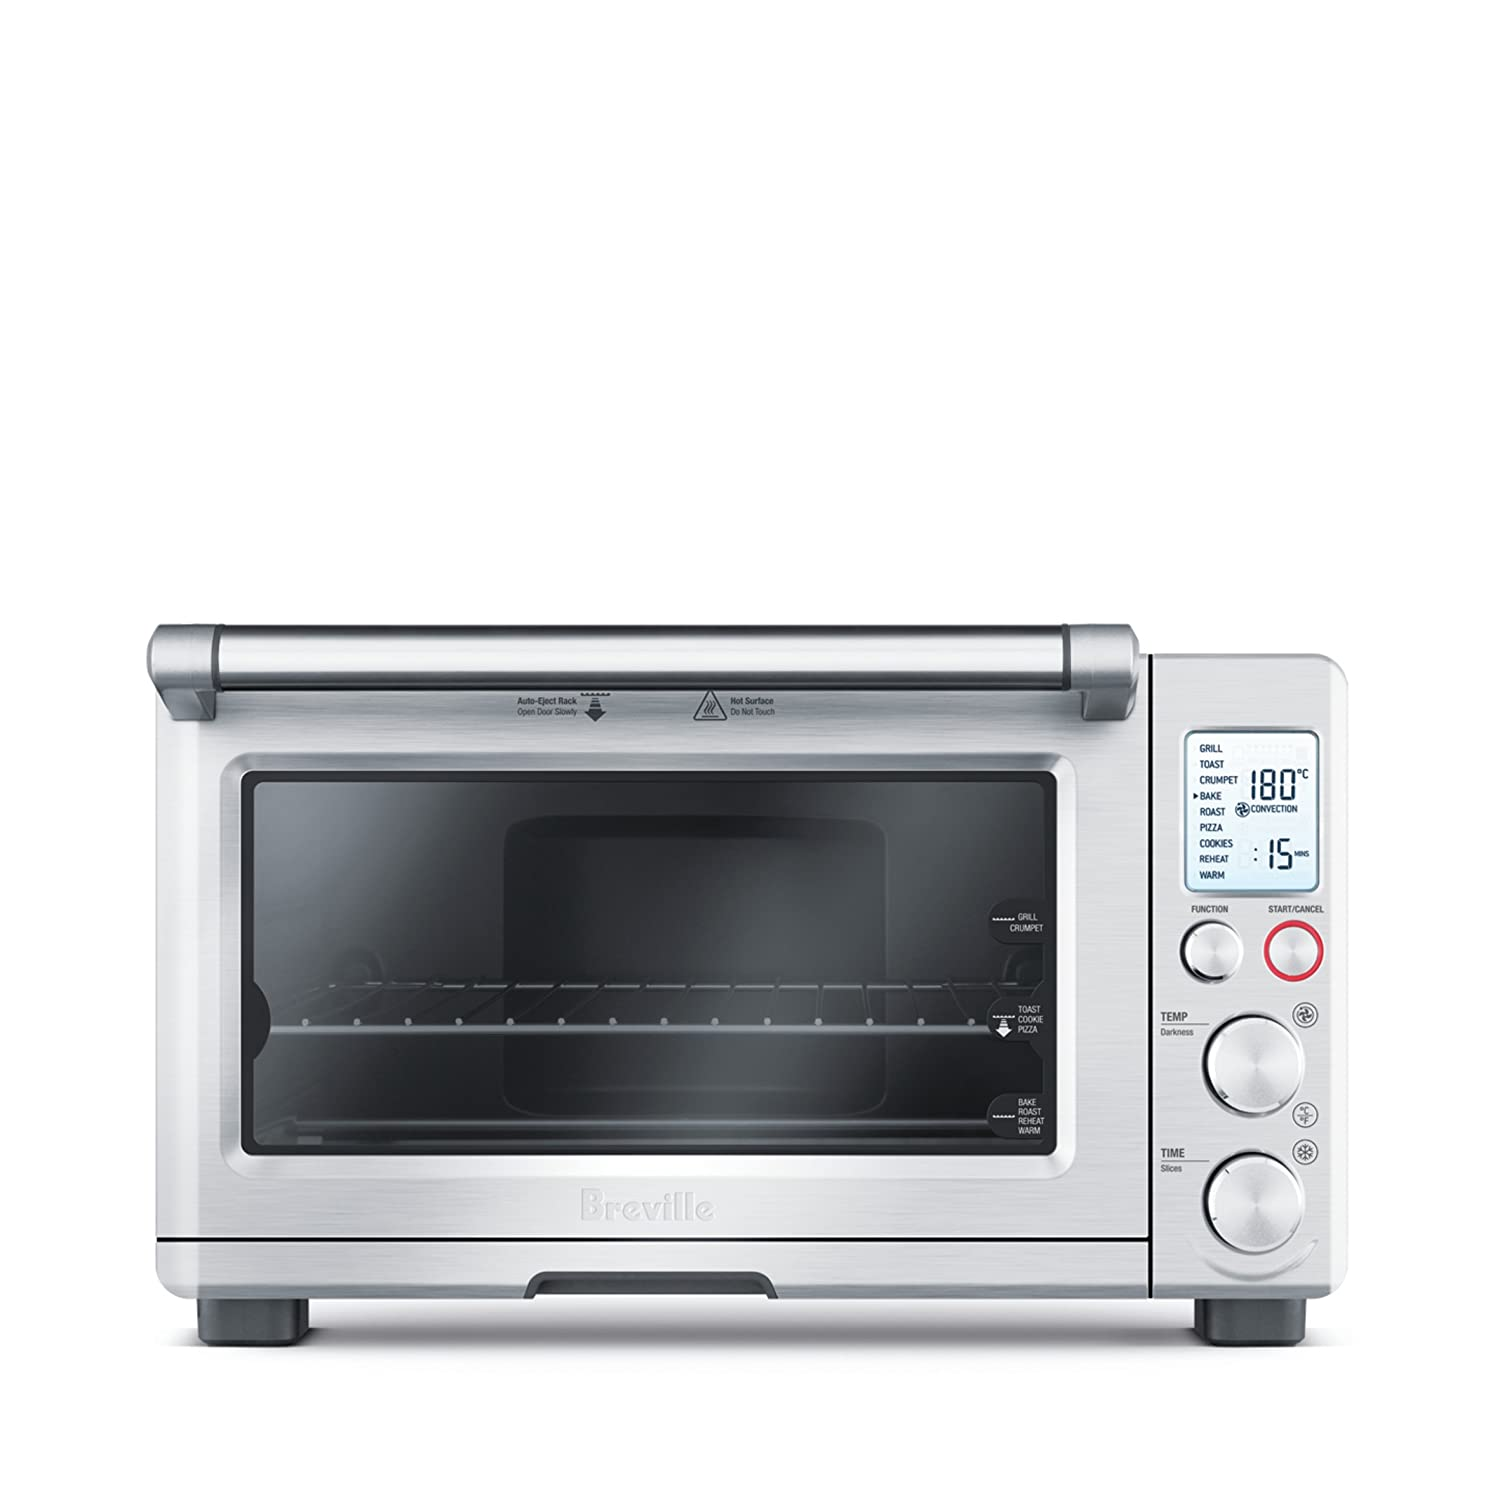 and for com oven ovens decker black toaster spacemaker sale bakingappliance